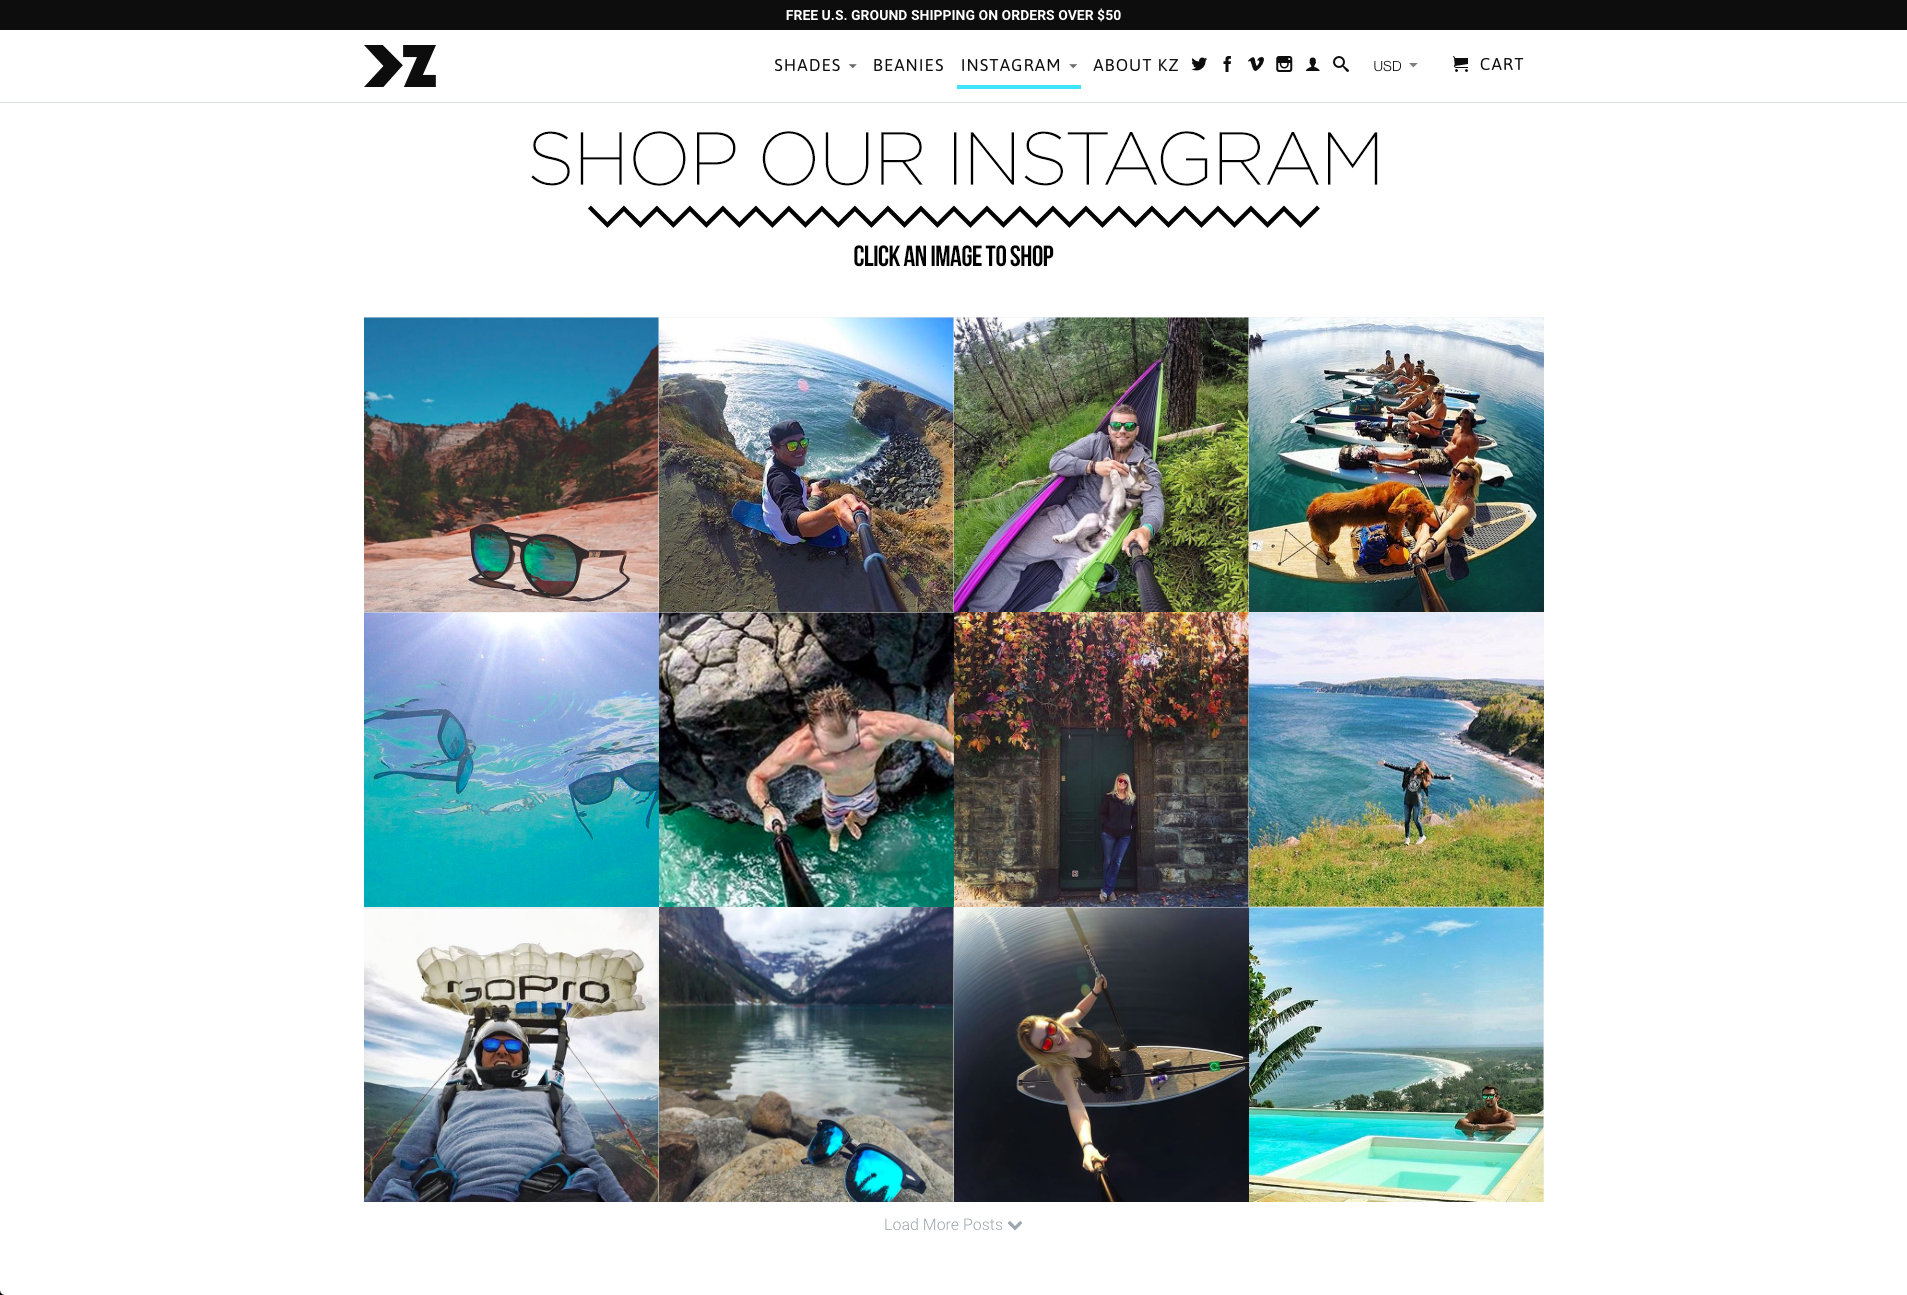 kz gear shoppable instagram